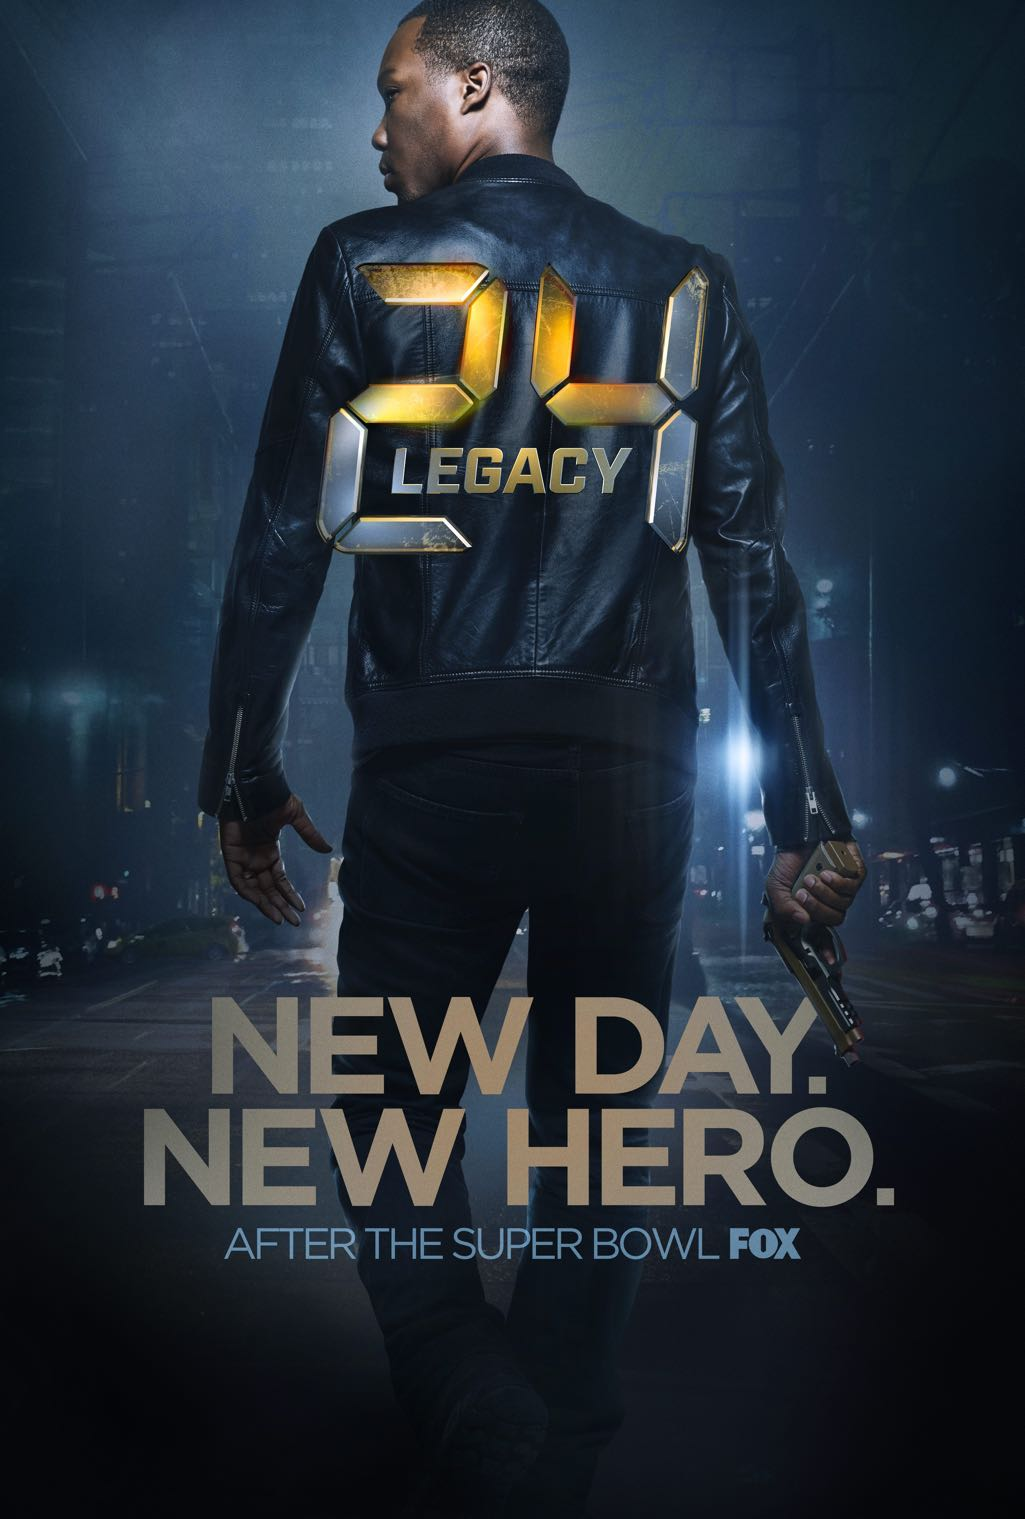 24 Legacy Season 1 Episode 3 Download 480p WEB-DL 150MB